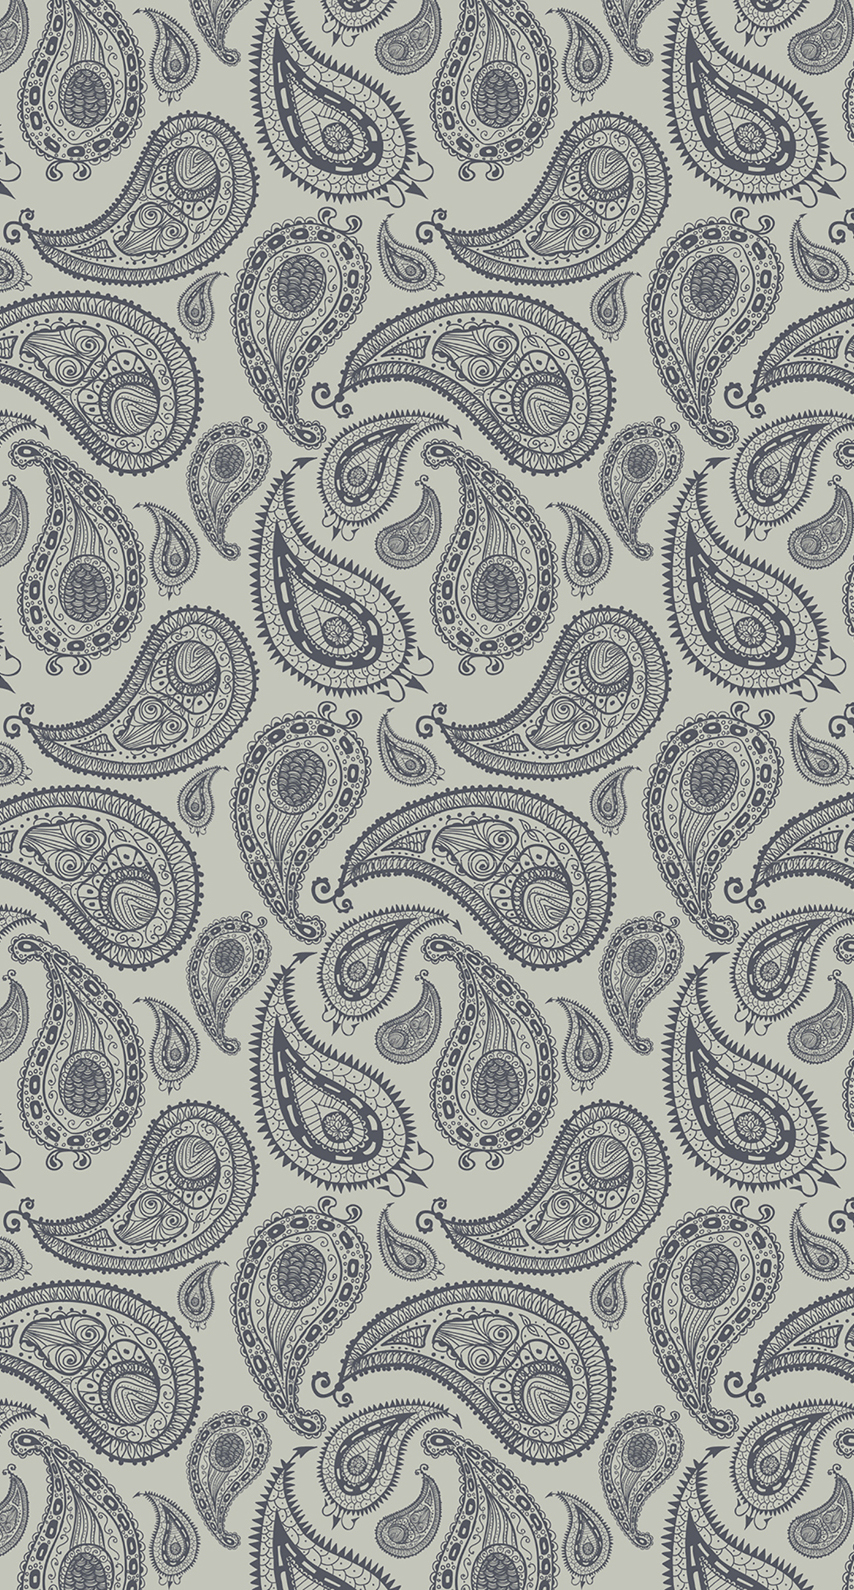 fabric, vector, seamless, ornate, textile, repeat, repetition